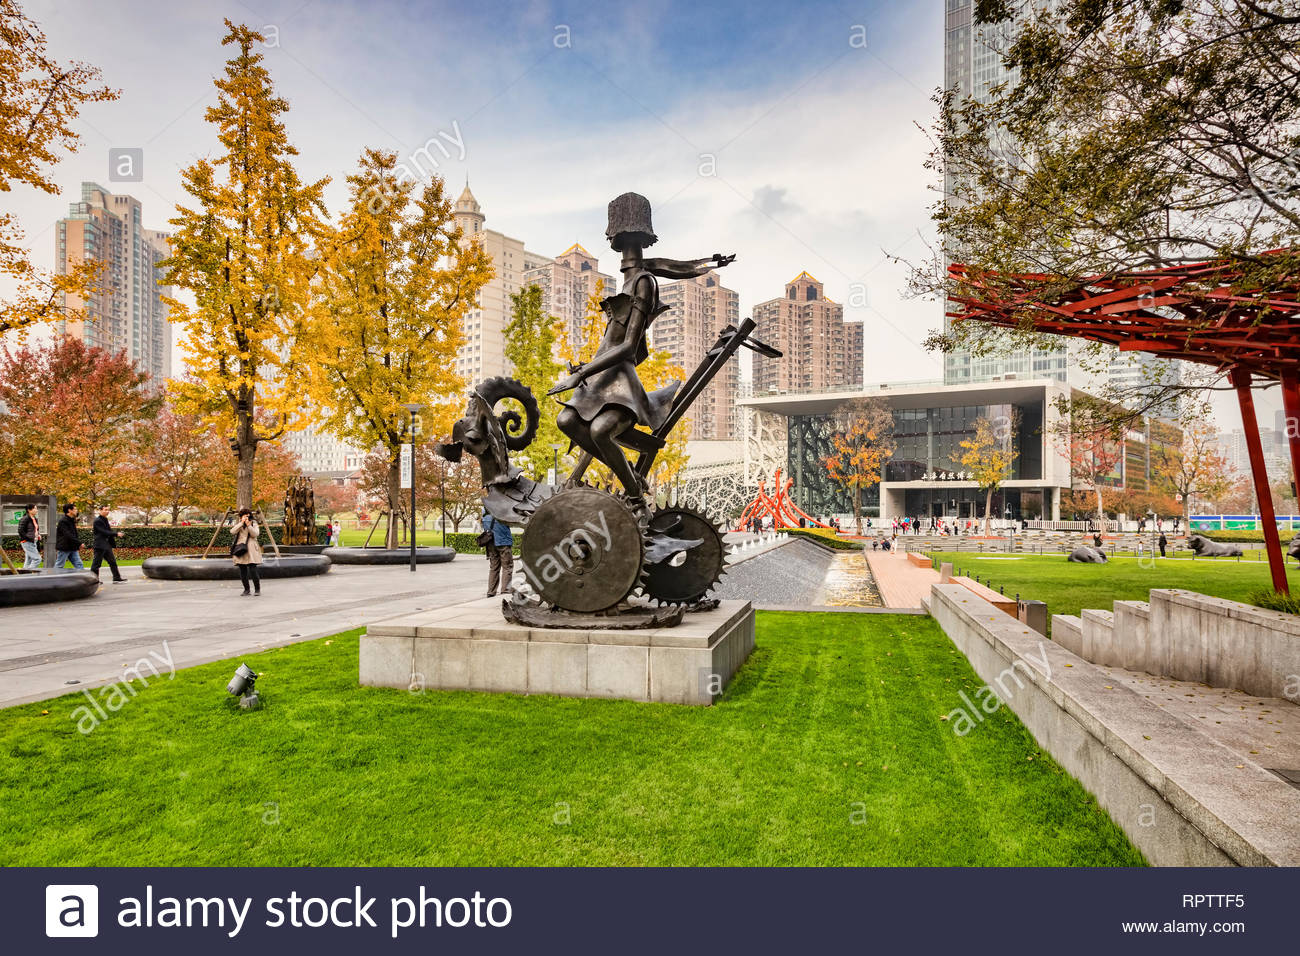 30 November 2018: Shanghai, China - Sculpture 'Flying Colors' by Georges Saulterre in the Jing'an Sculpture Park, with the Shanghai Natural History Mu - Stock Image